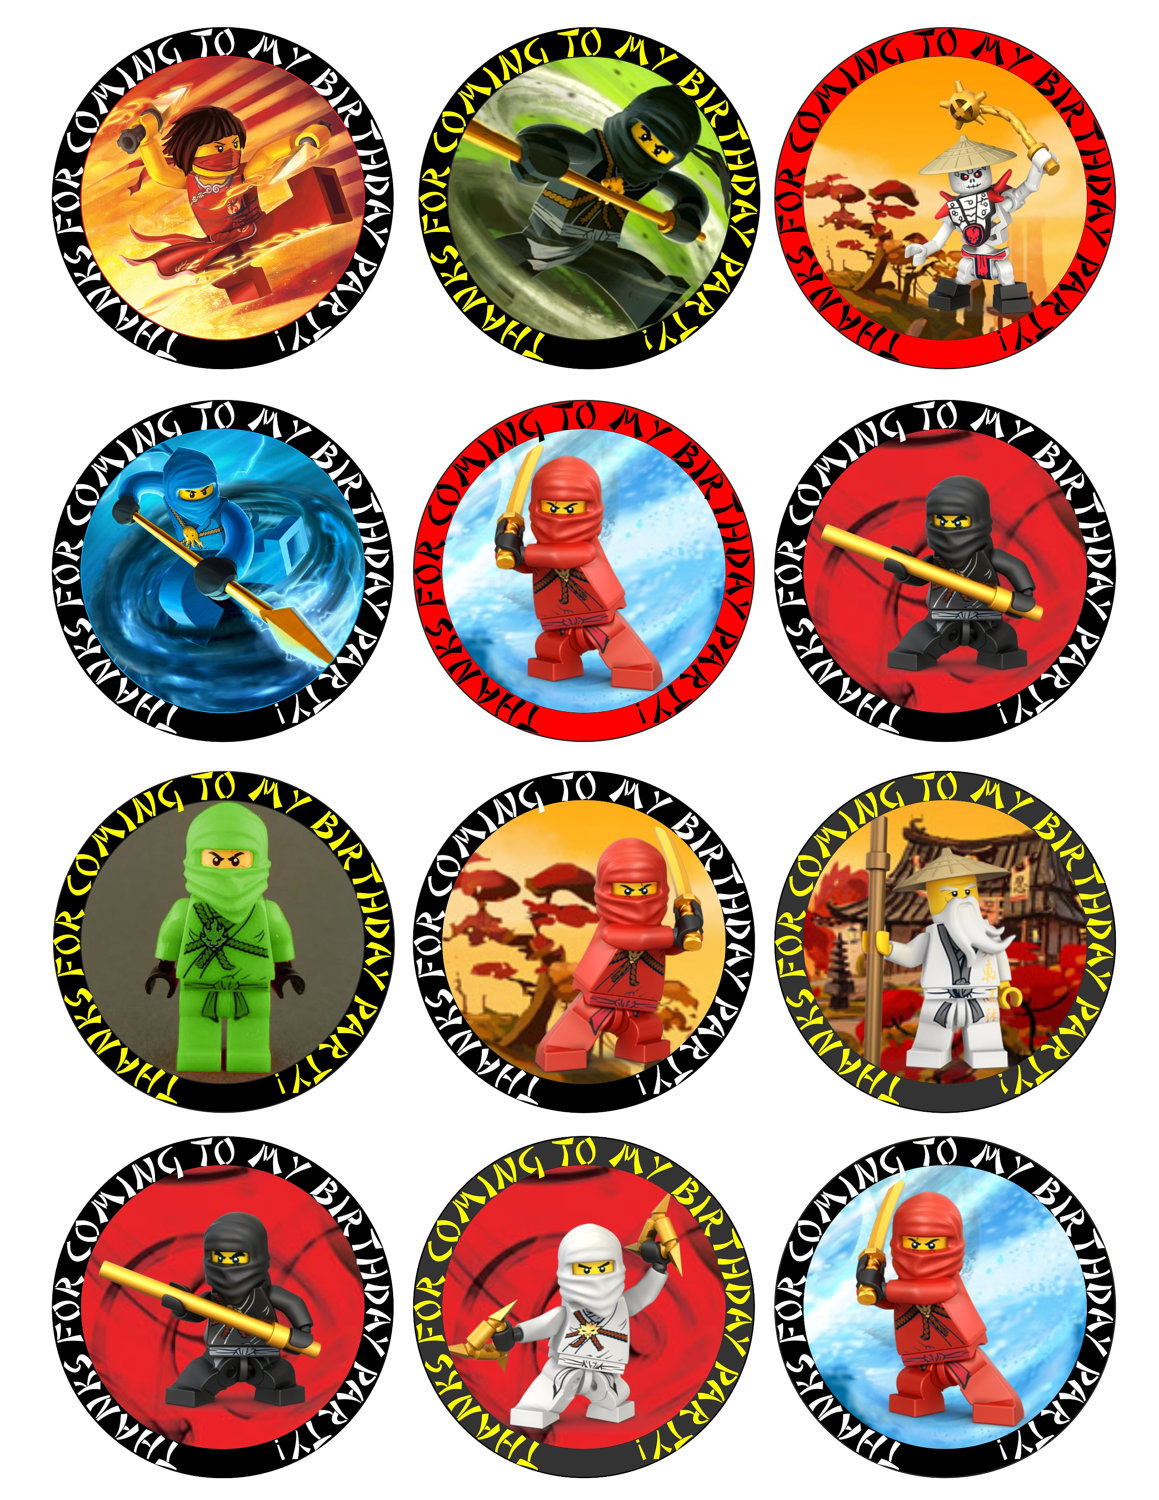 Ninjago Free Printable Toppers, Labels, Images And Invitations. - Oh - Free Printable Lego Cupcake Toppers